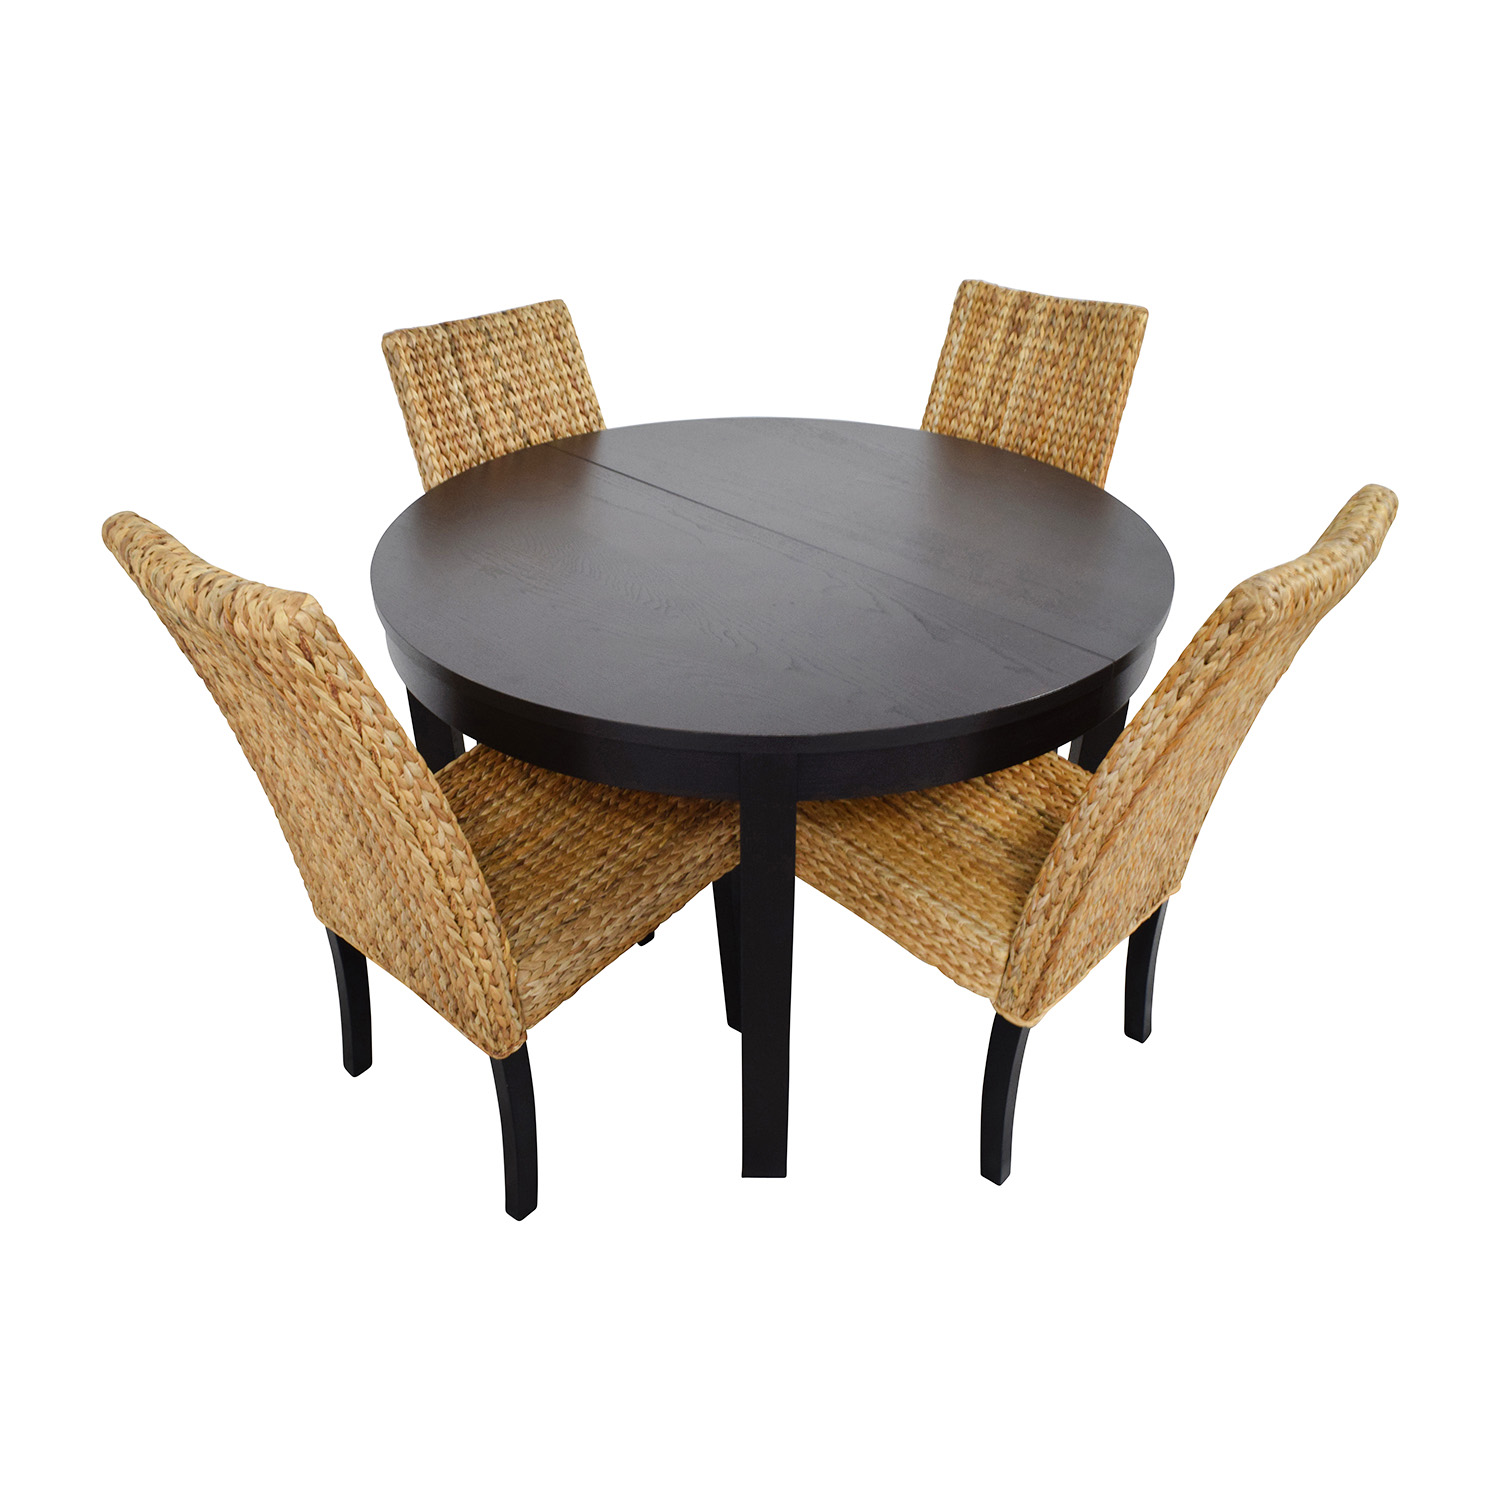 66 off macy 39 s ikea round black dining table set with for Buy dining table